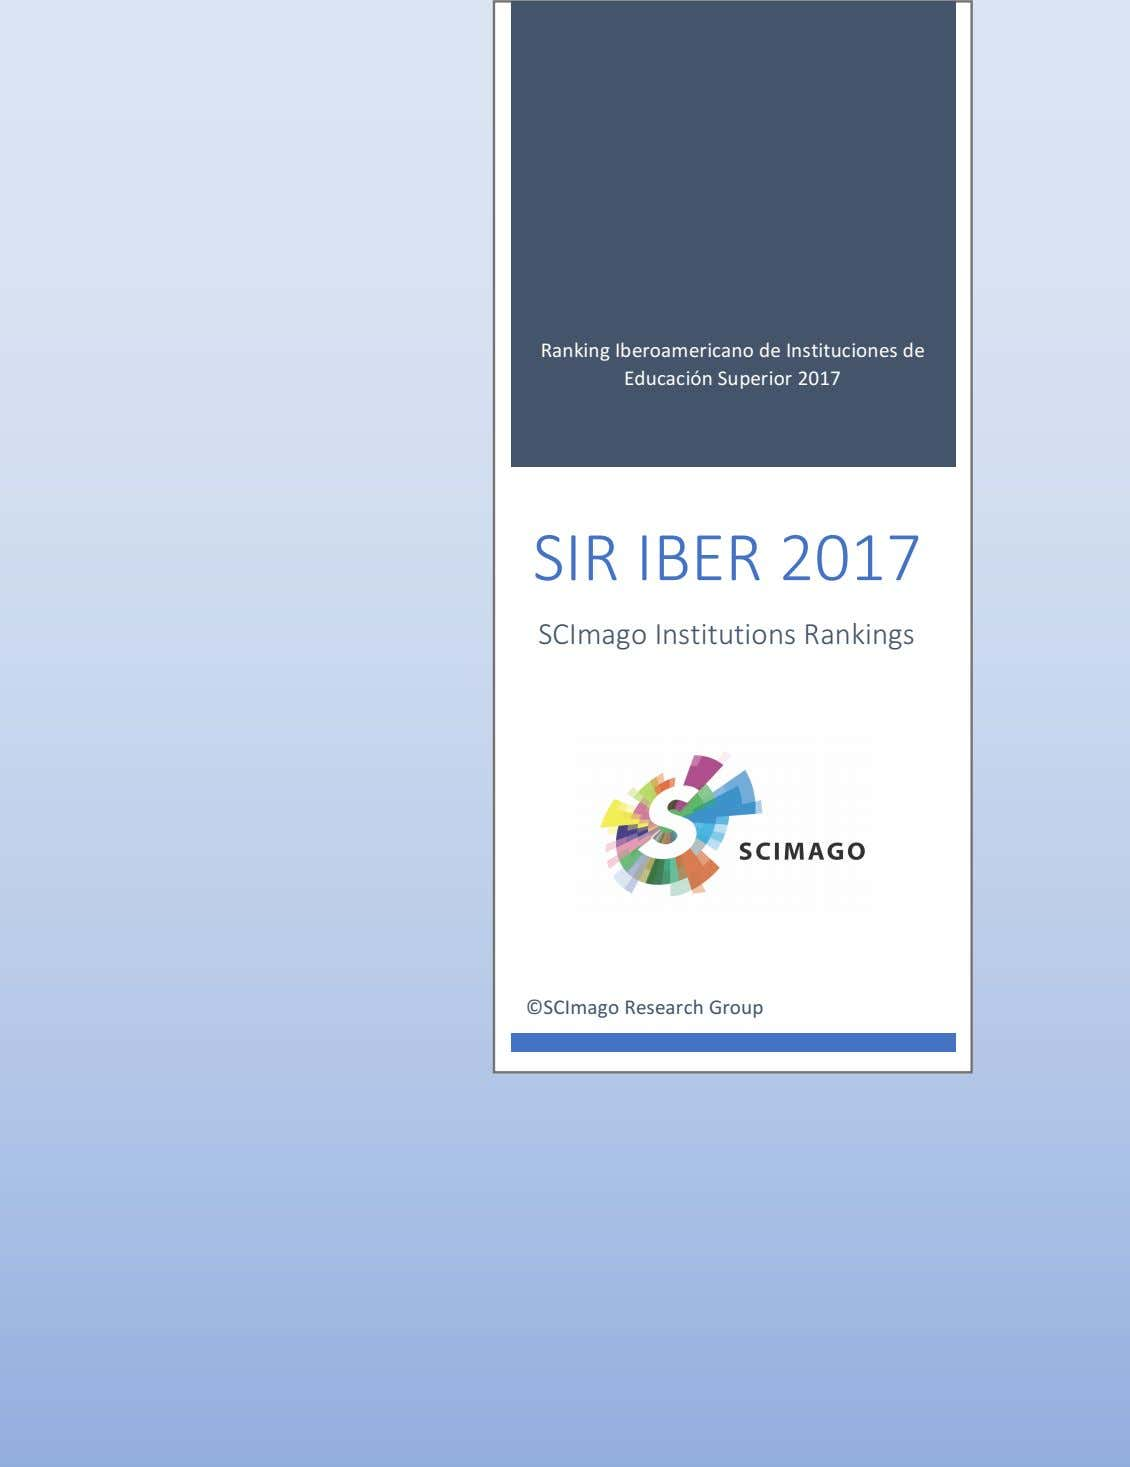 Ranking Iberoamericano de Instituciones de Educación Superior 2017 SIR IBER 2017 SCImago Institutions Rankings